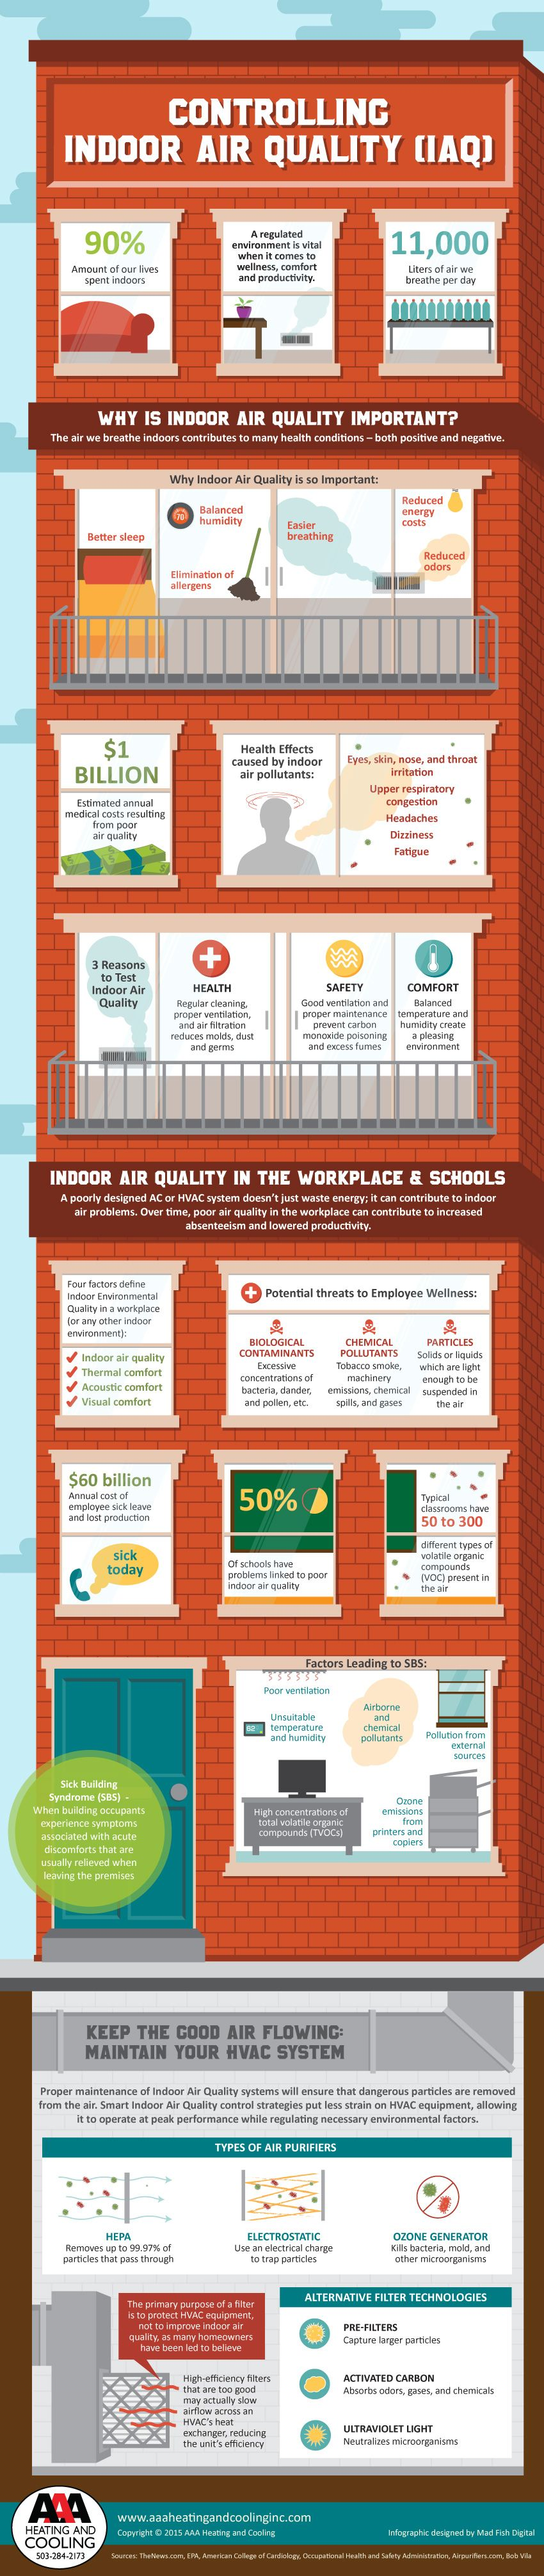 Controlling Indoor Air Quality [Infographic] Indoor air